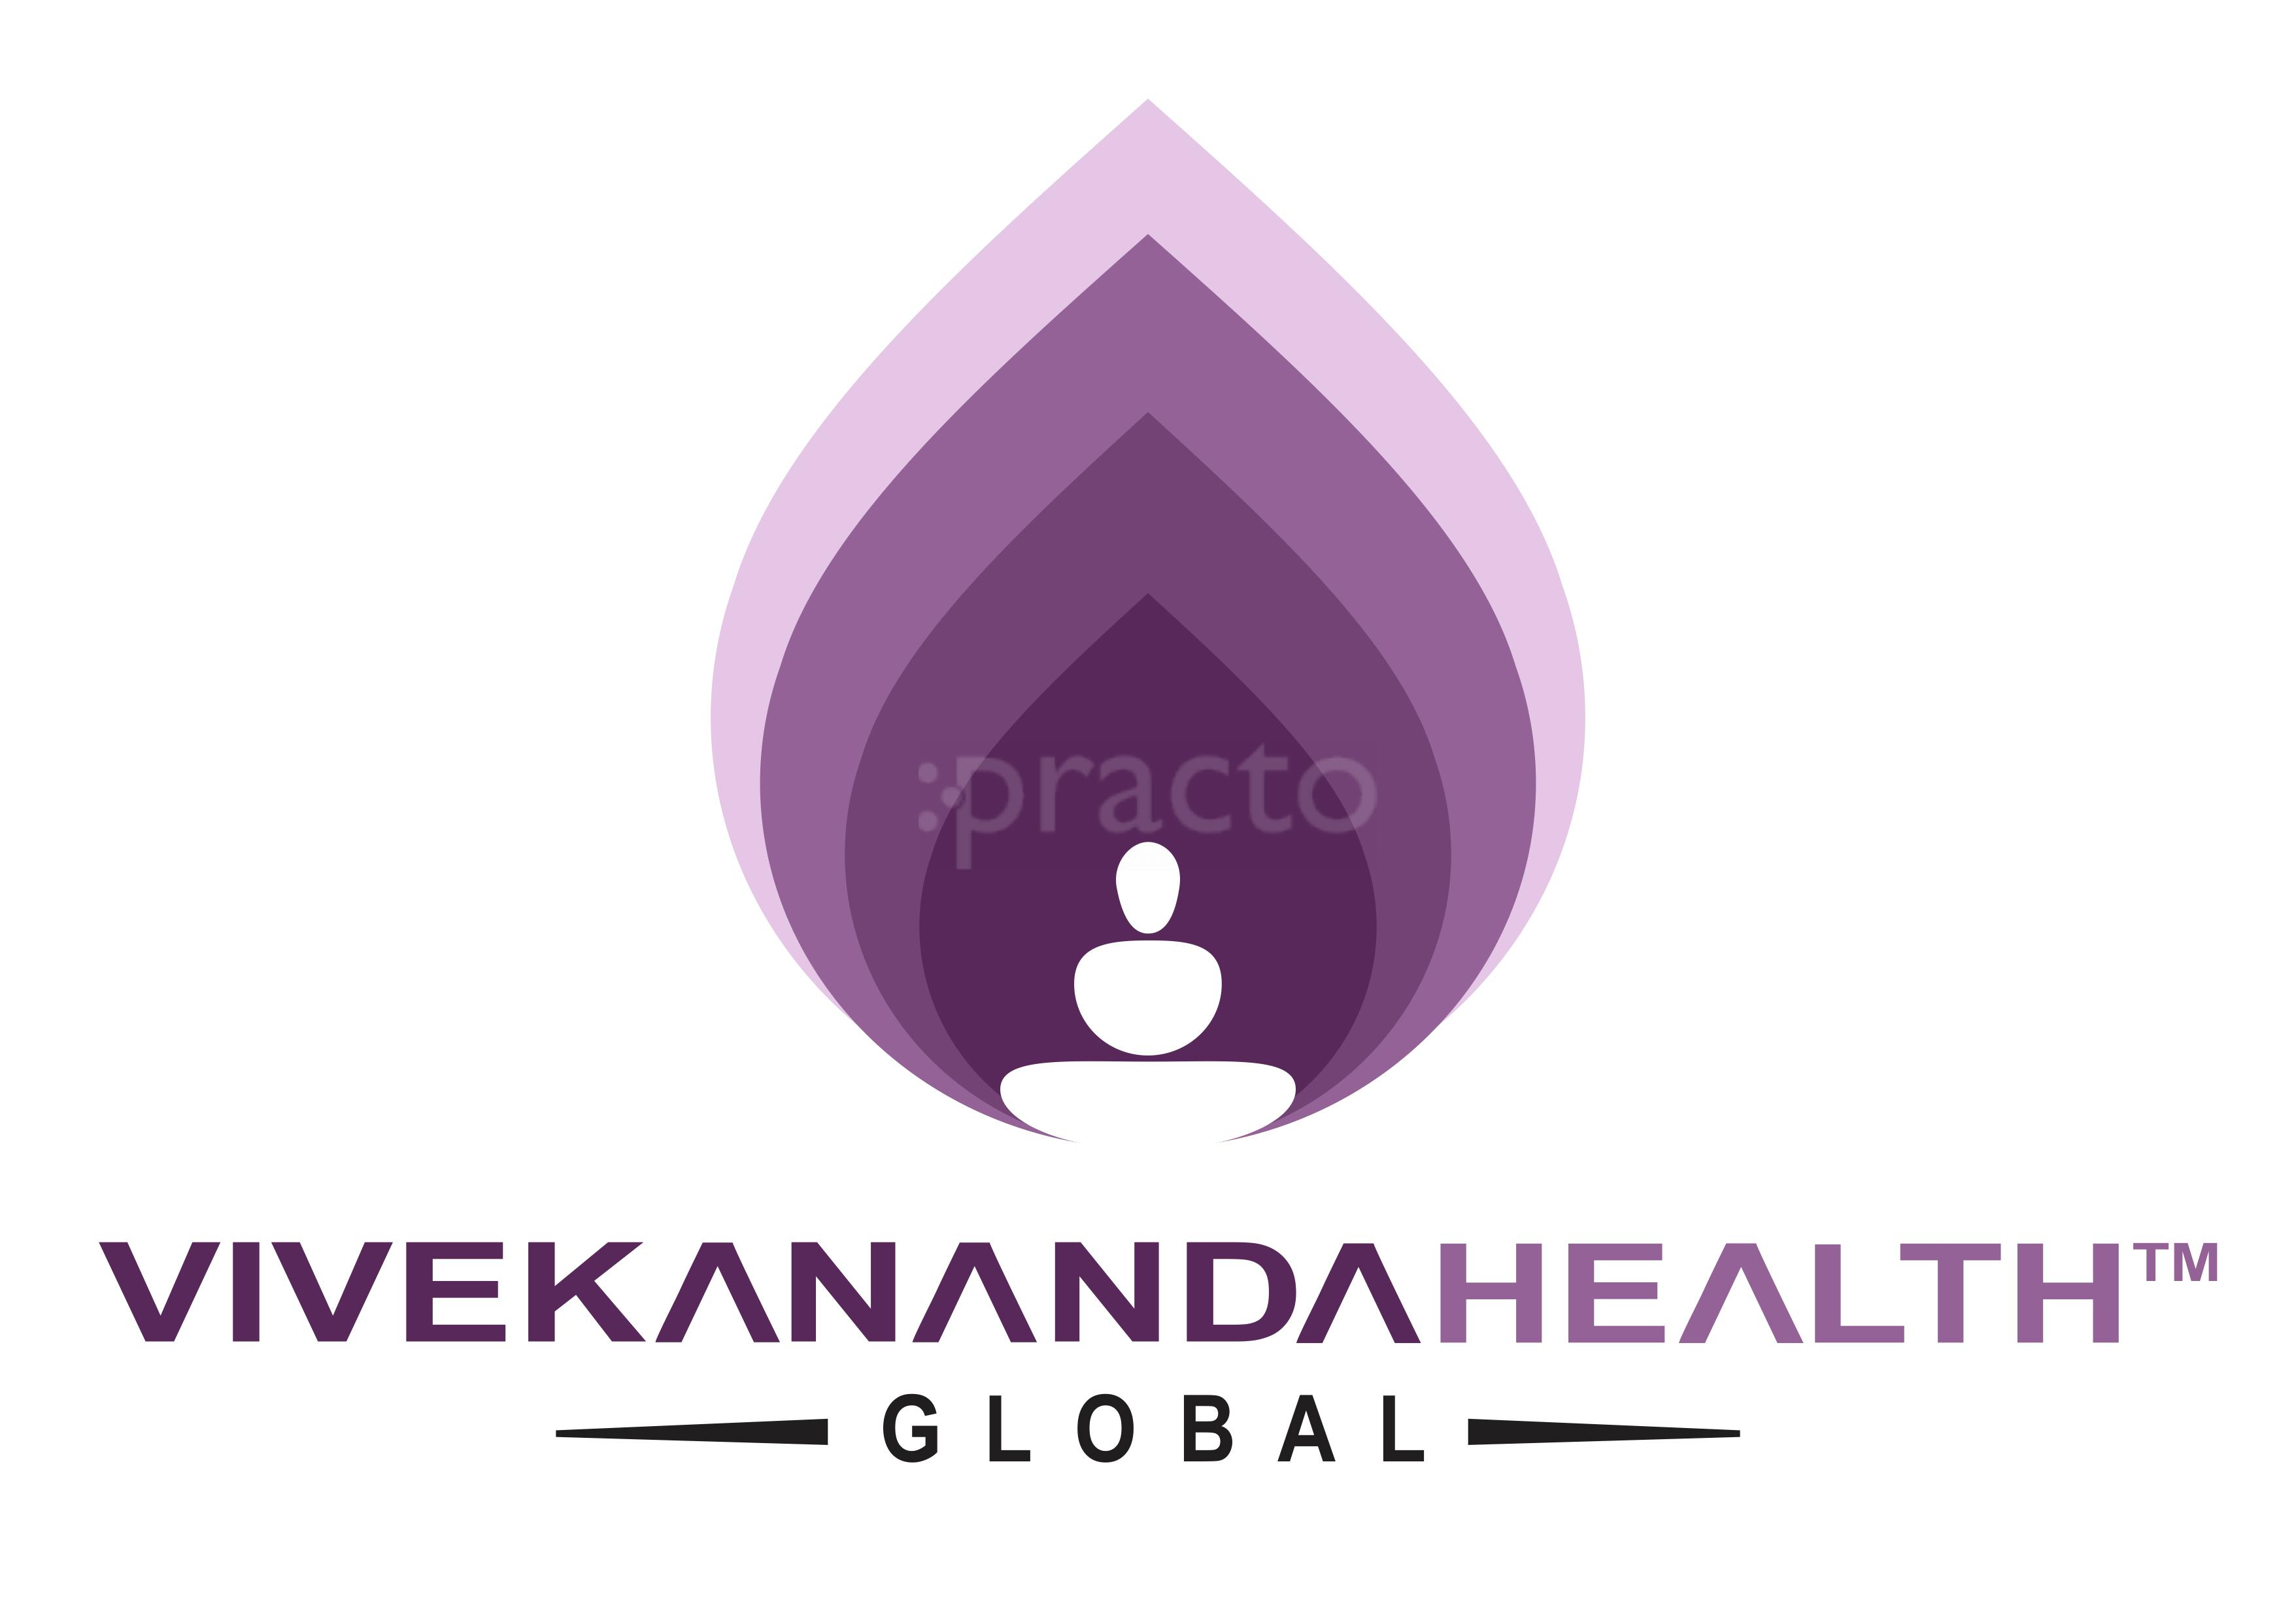 Vivekananda Health Global